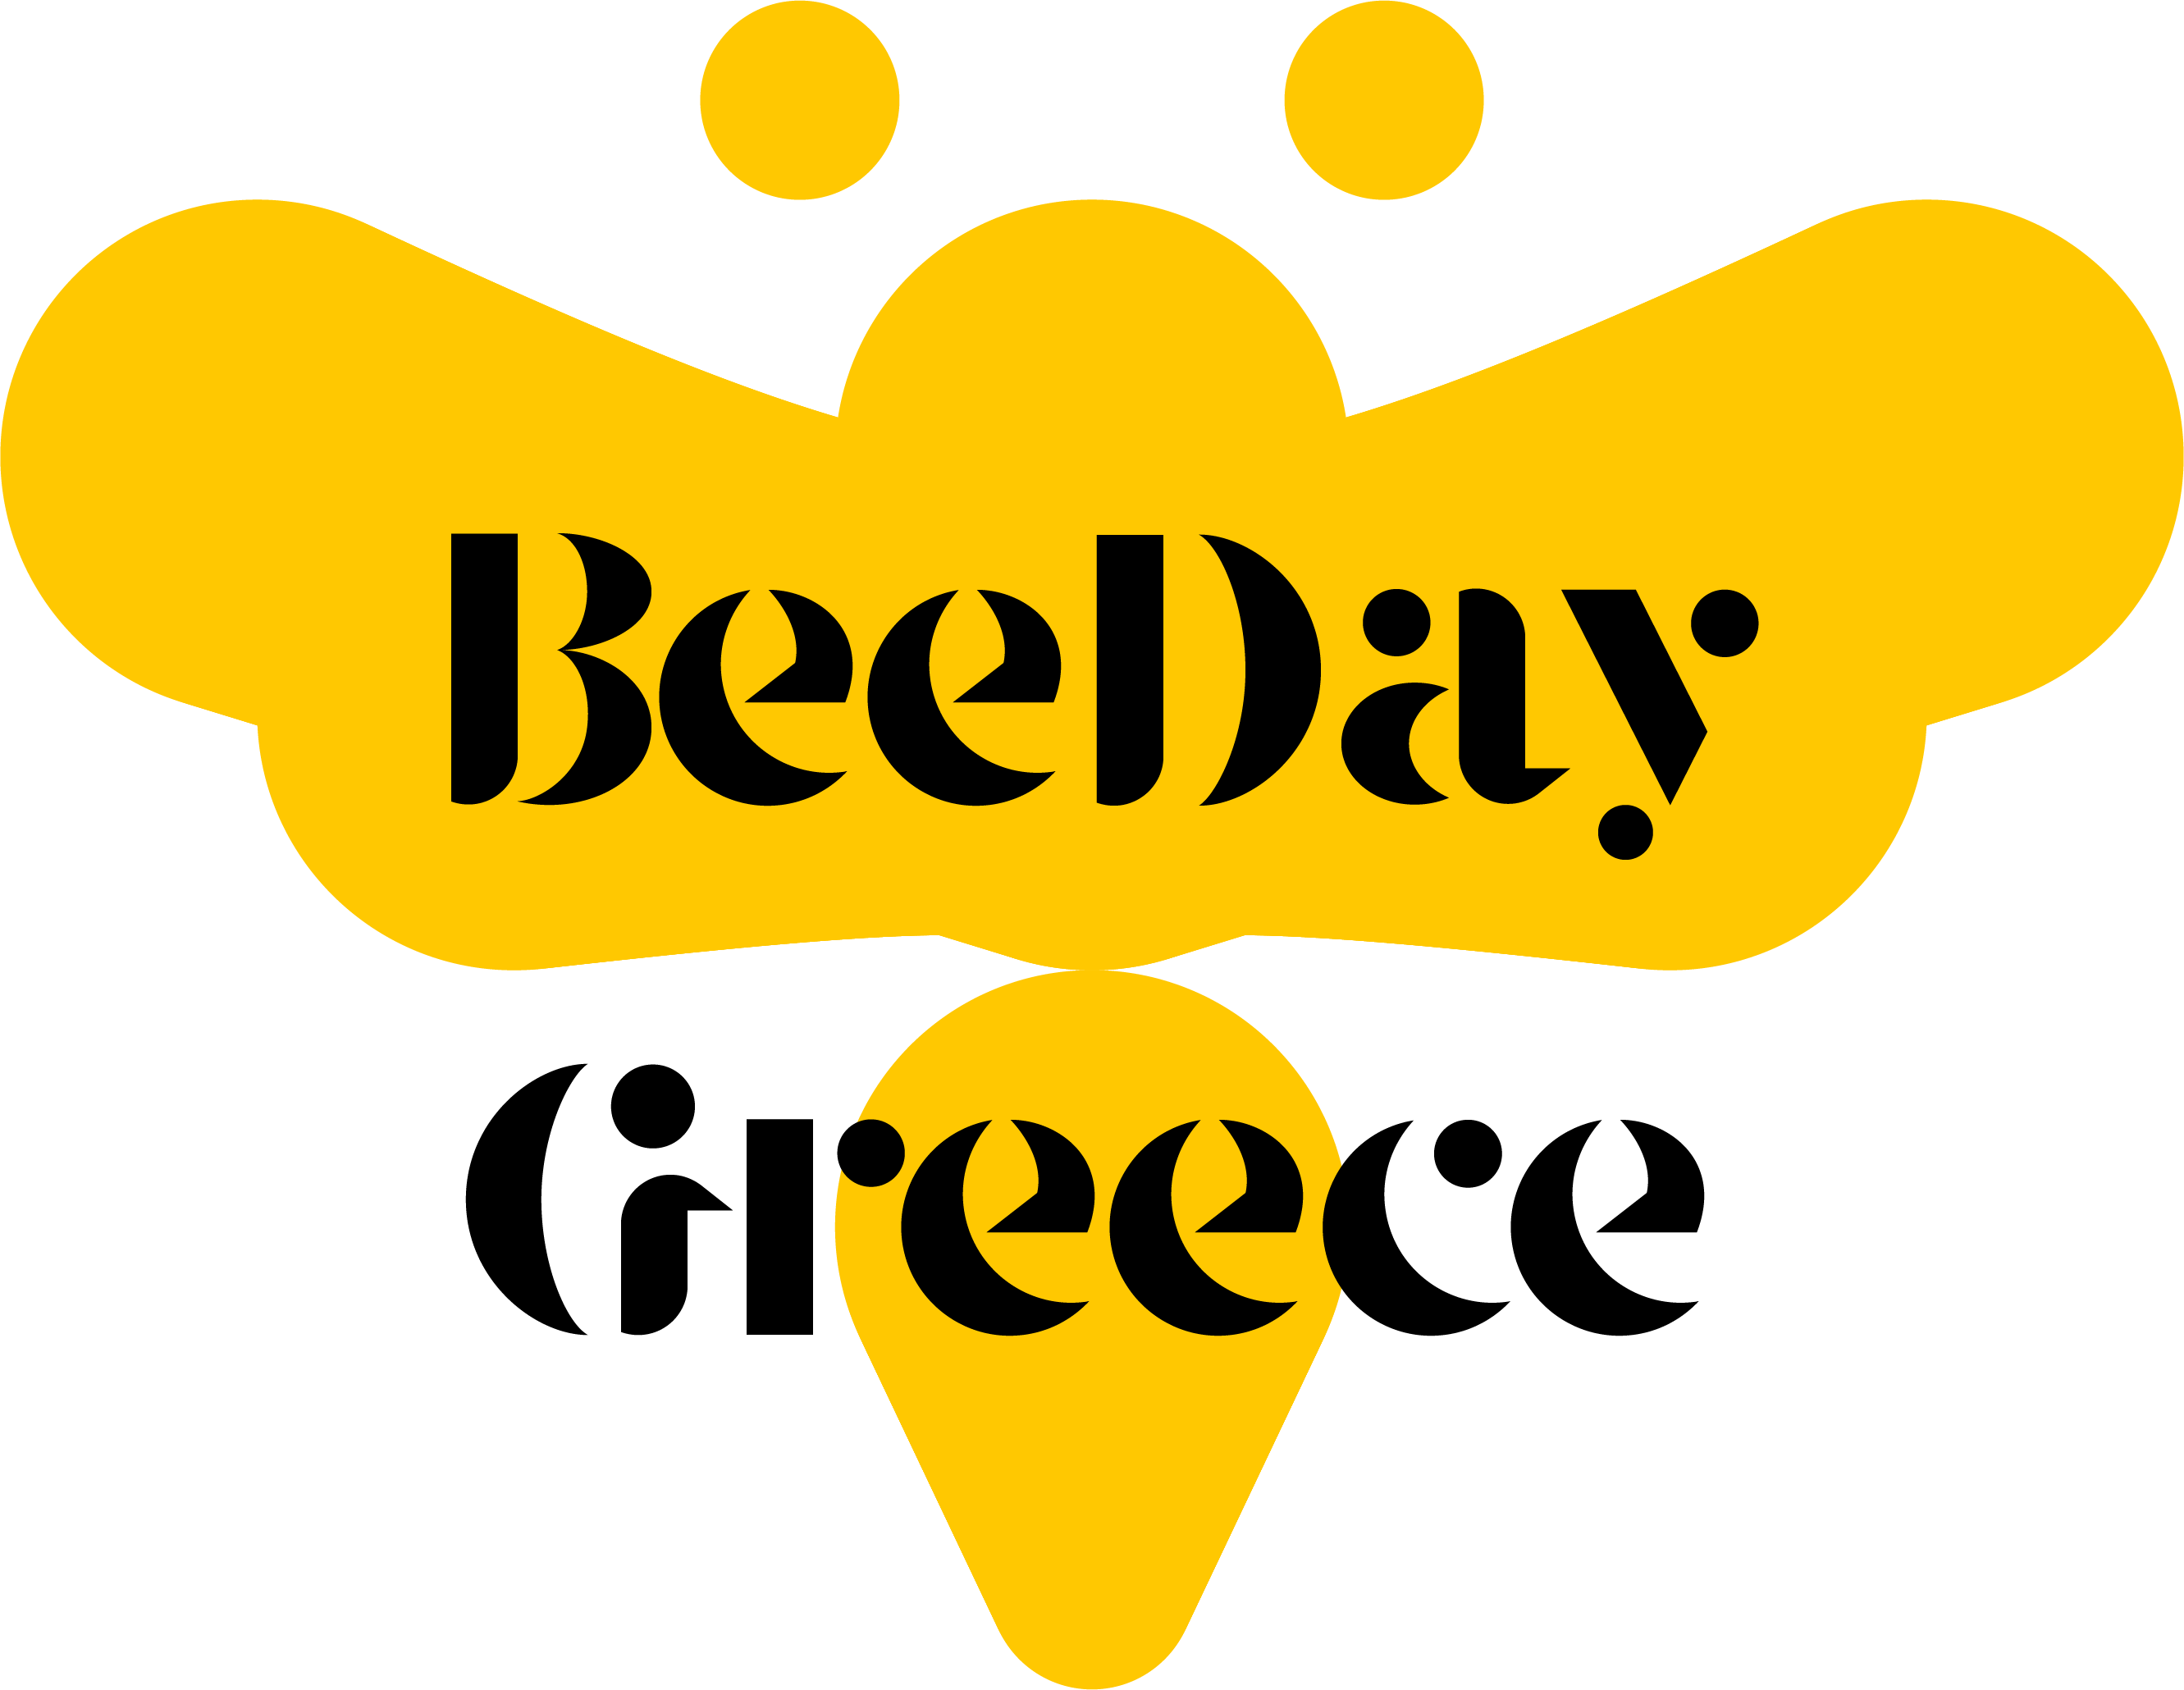 Bee Day Greece